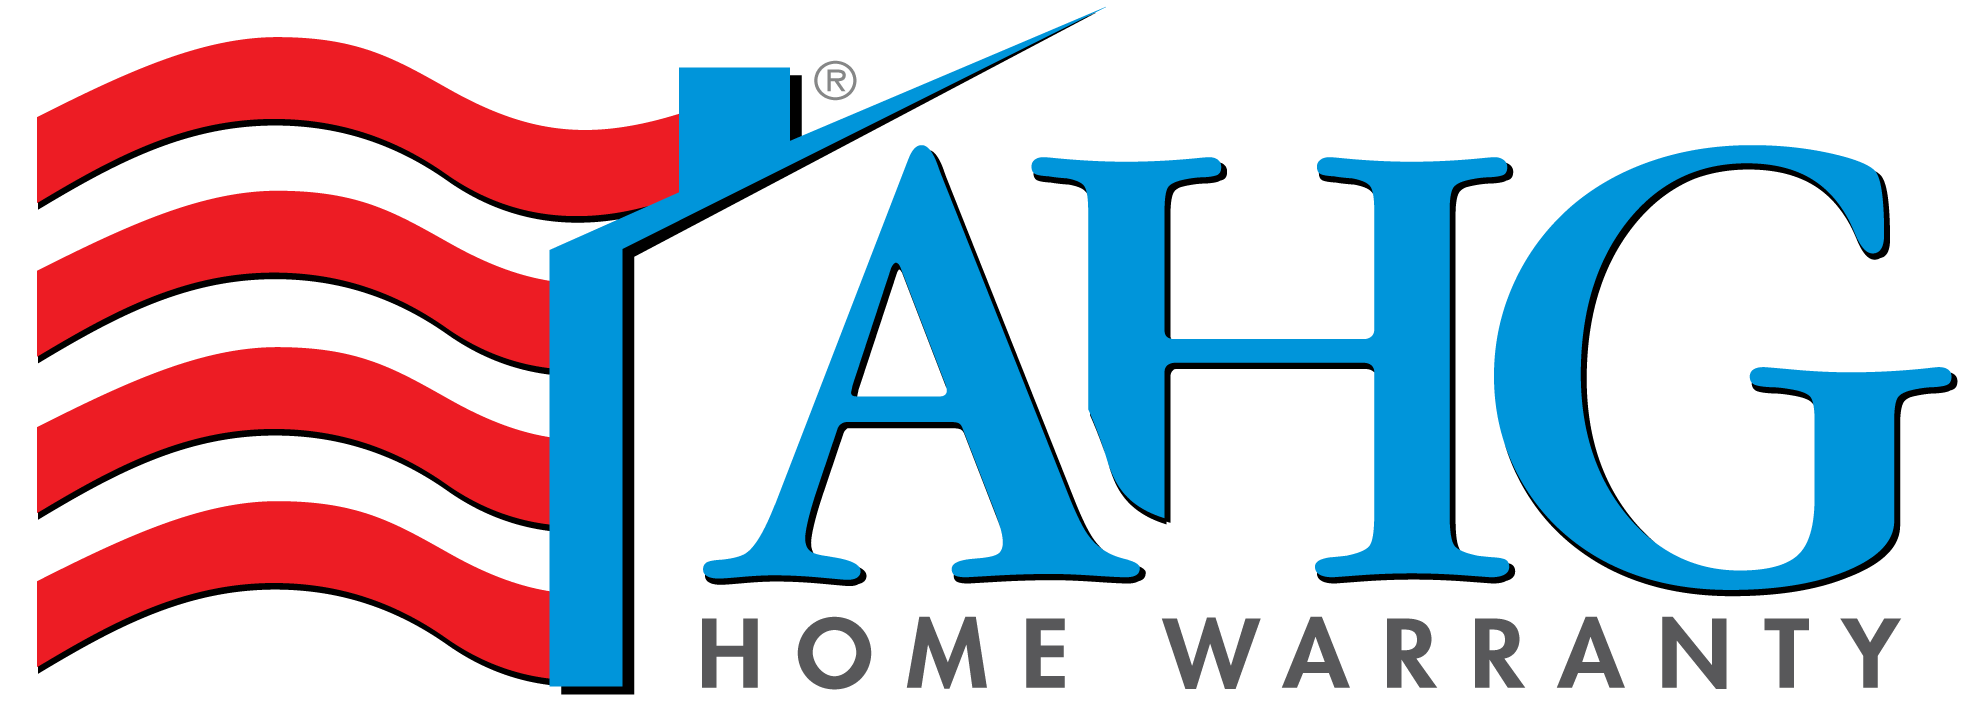 Meet and Eat with AHG HOME WARRANTY